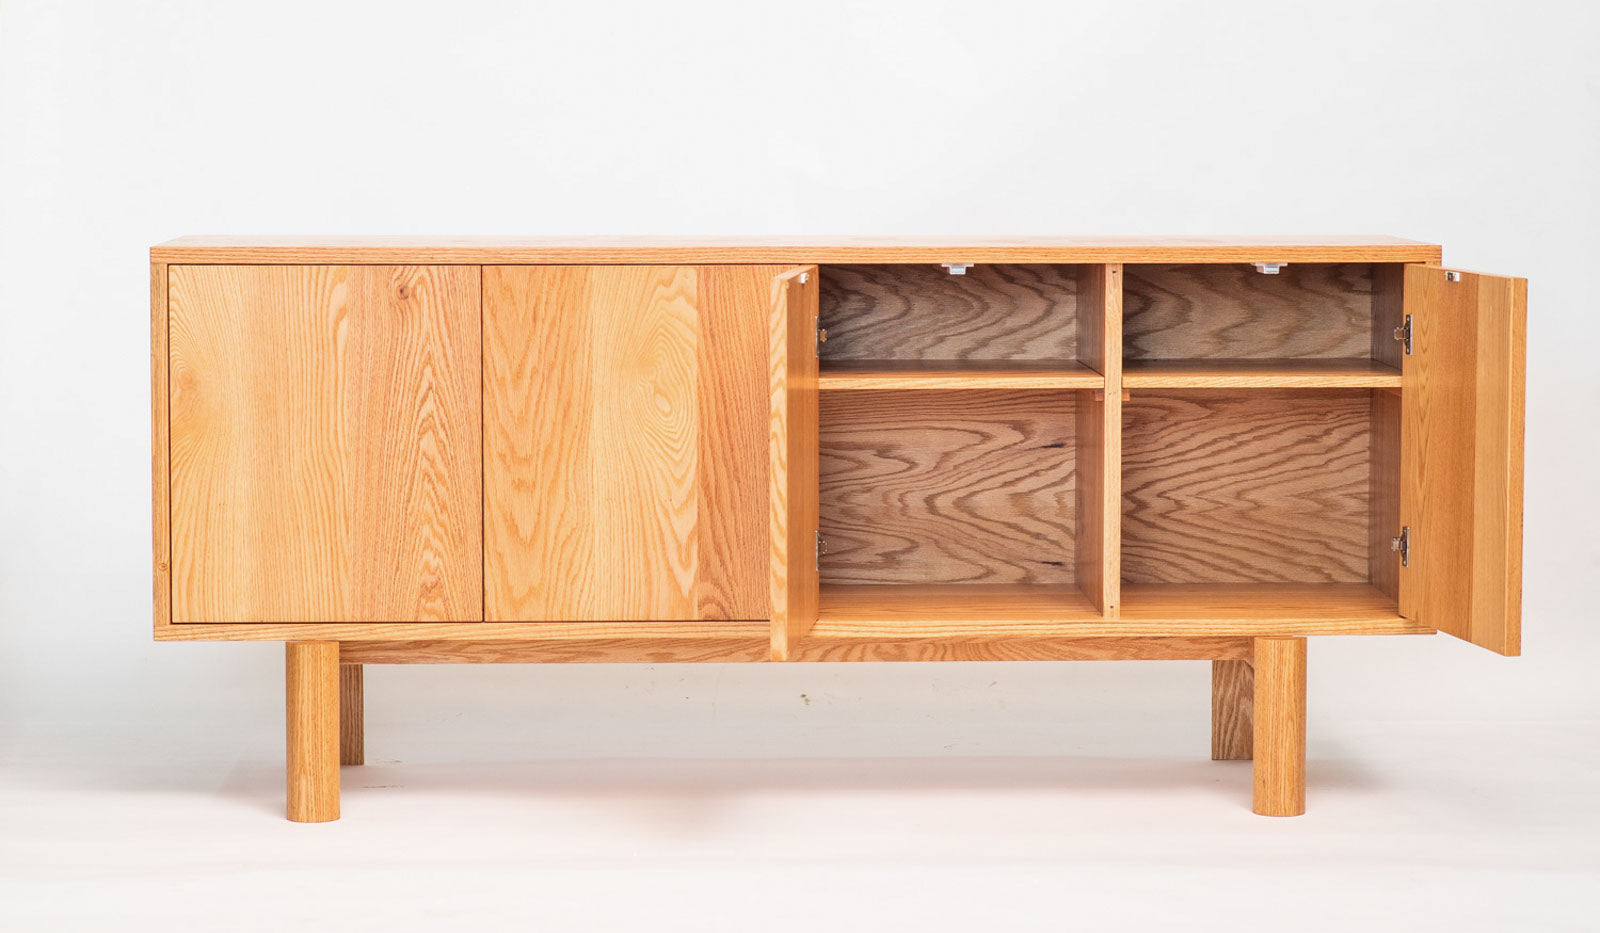 De Jong & Co Brower Credenza, , De Jong & Co, SPARTAN SHOP